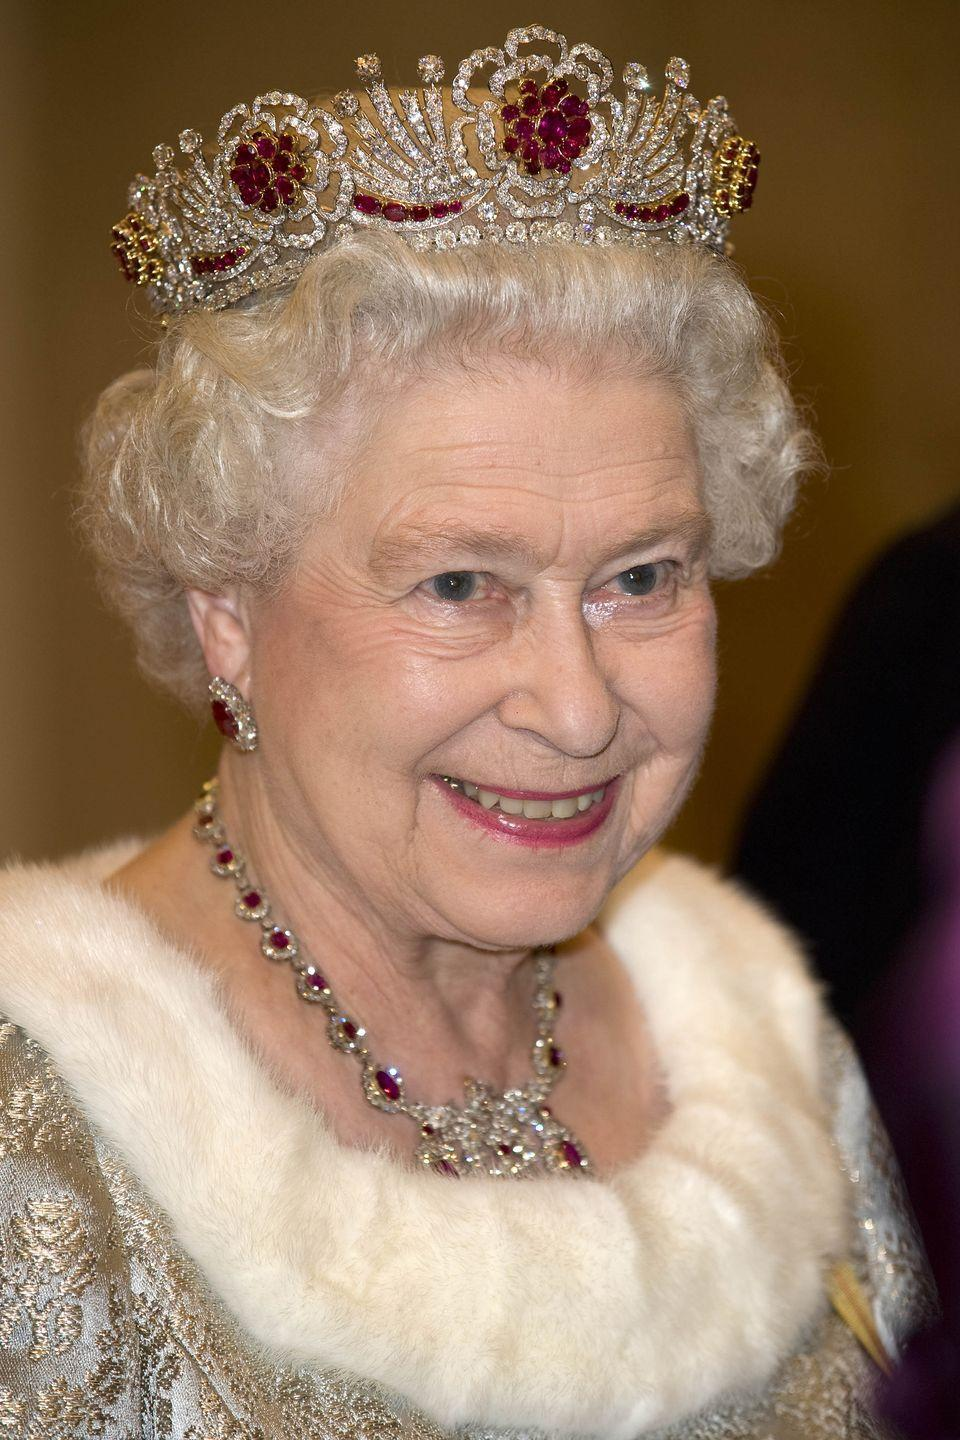 <p>The Queen had the Burmese Ruby tiara made by Garrard in 1973. It features 96 rubies that were gifted to her by Burma (now Myanmar) when she married the Duke of Edinburgh in 1947. The diamonds were also a wedding gift, from the Nizam of Hyderabad, the monarch of the Indian state of Hyderabad.</p>